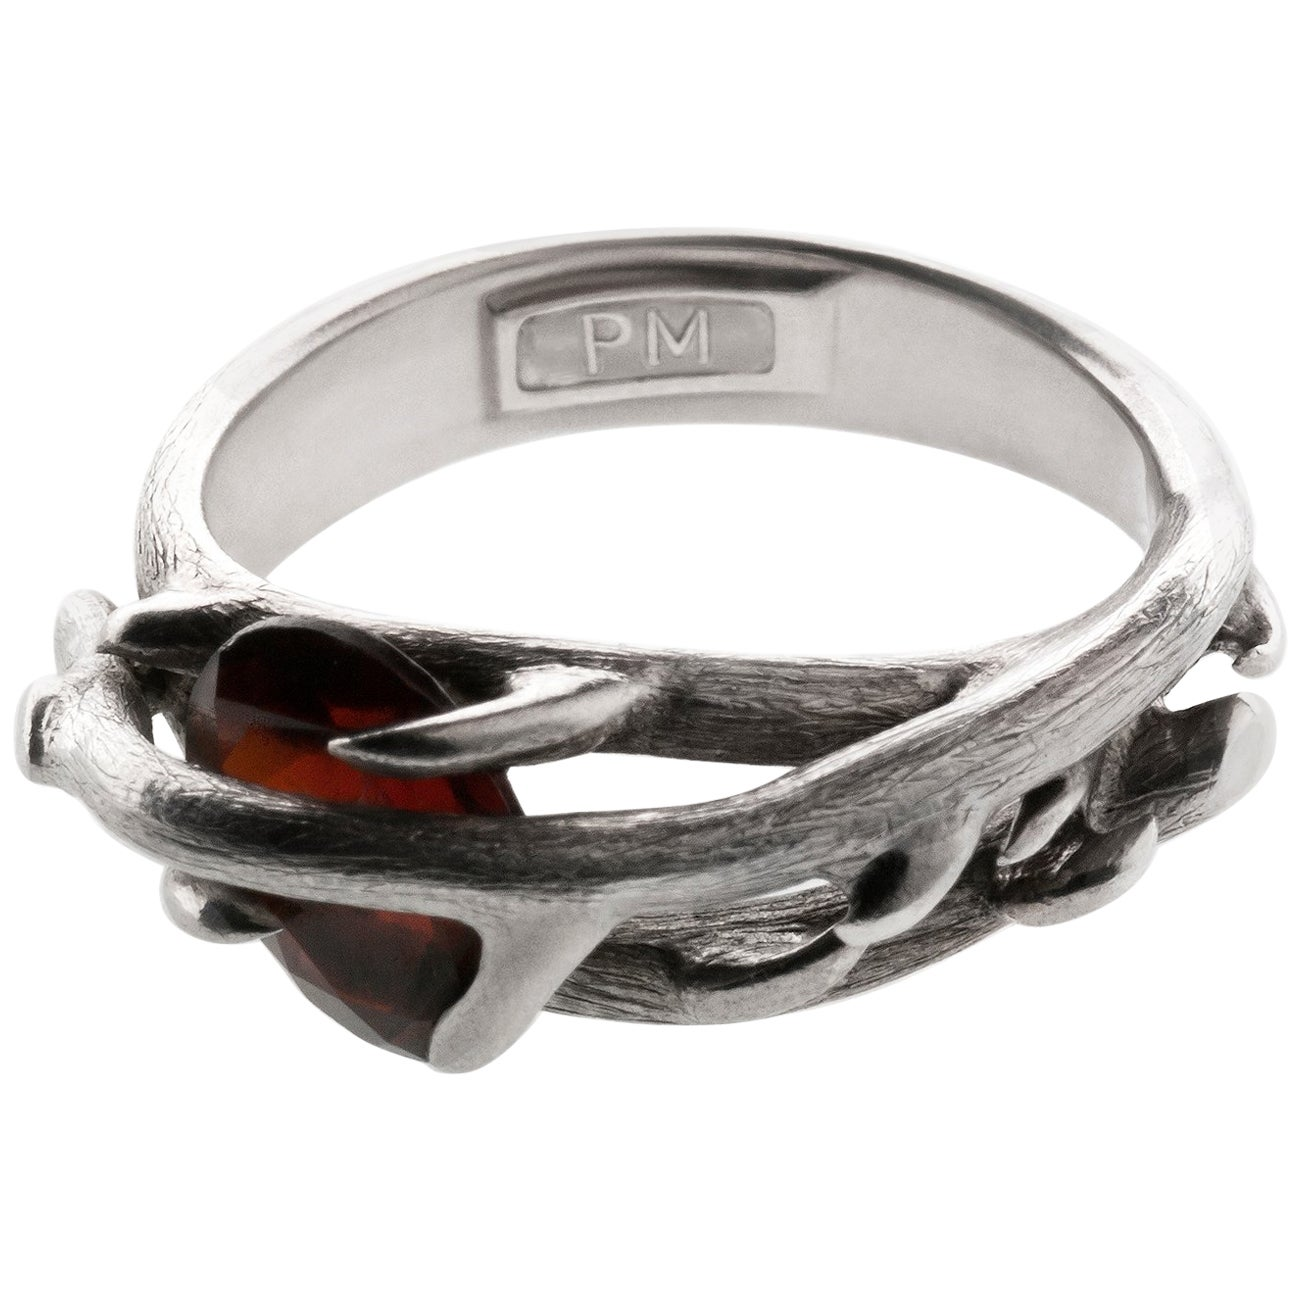 Contemporary Wild Rose Sterling Silver Ring by the Artist with Garnet